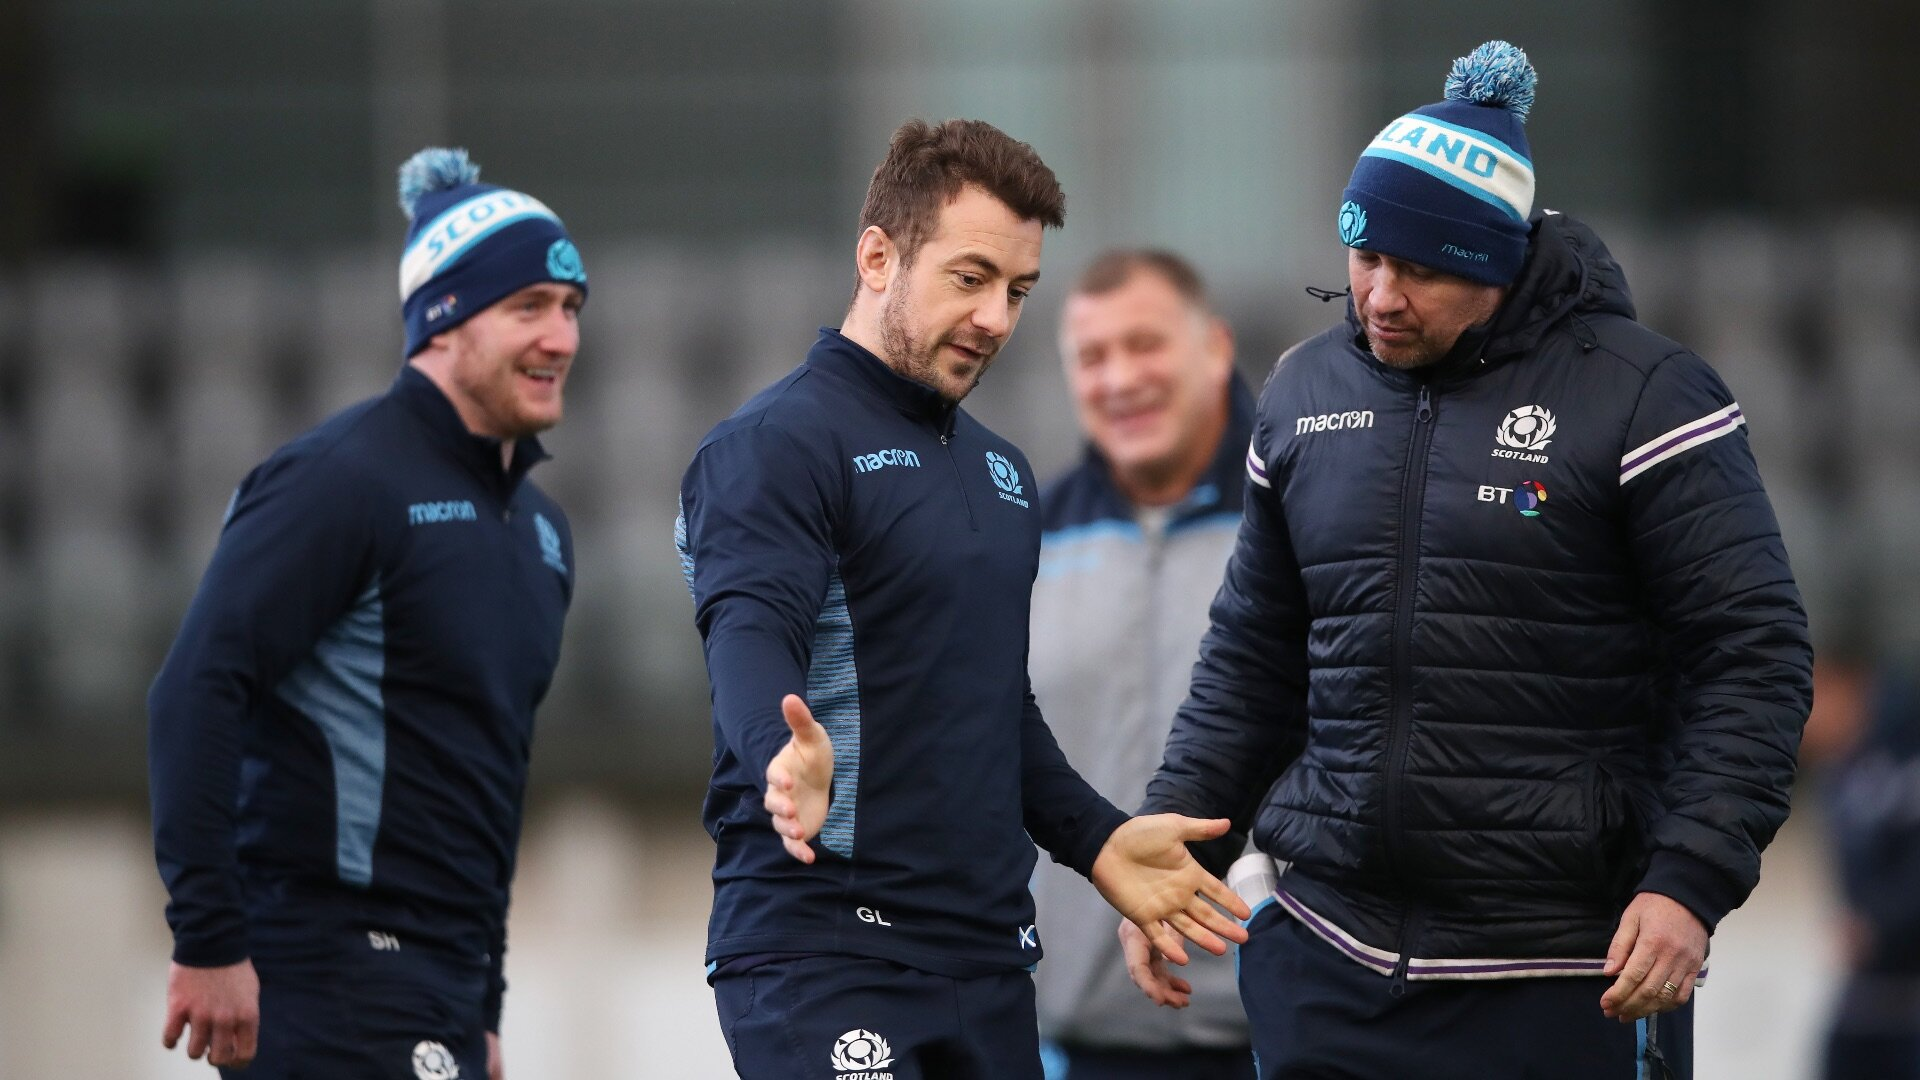 Laidlaw becomes the third Scotland player in as many weeks to quit Test rugby